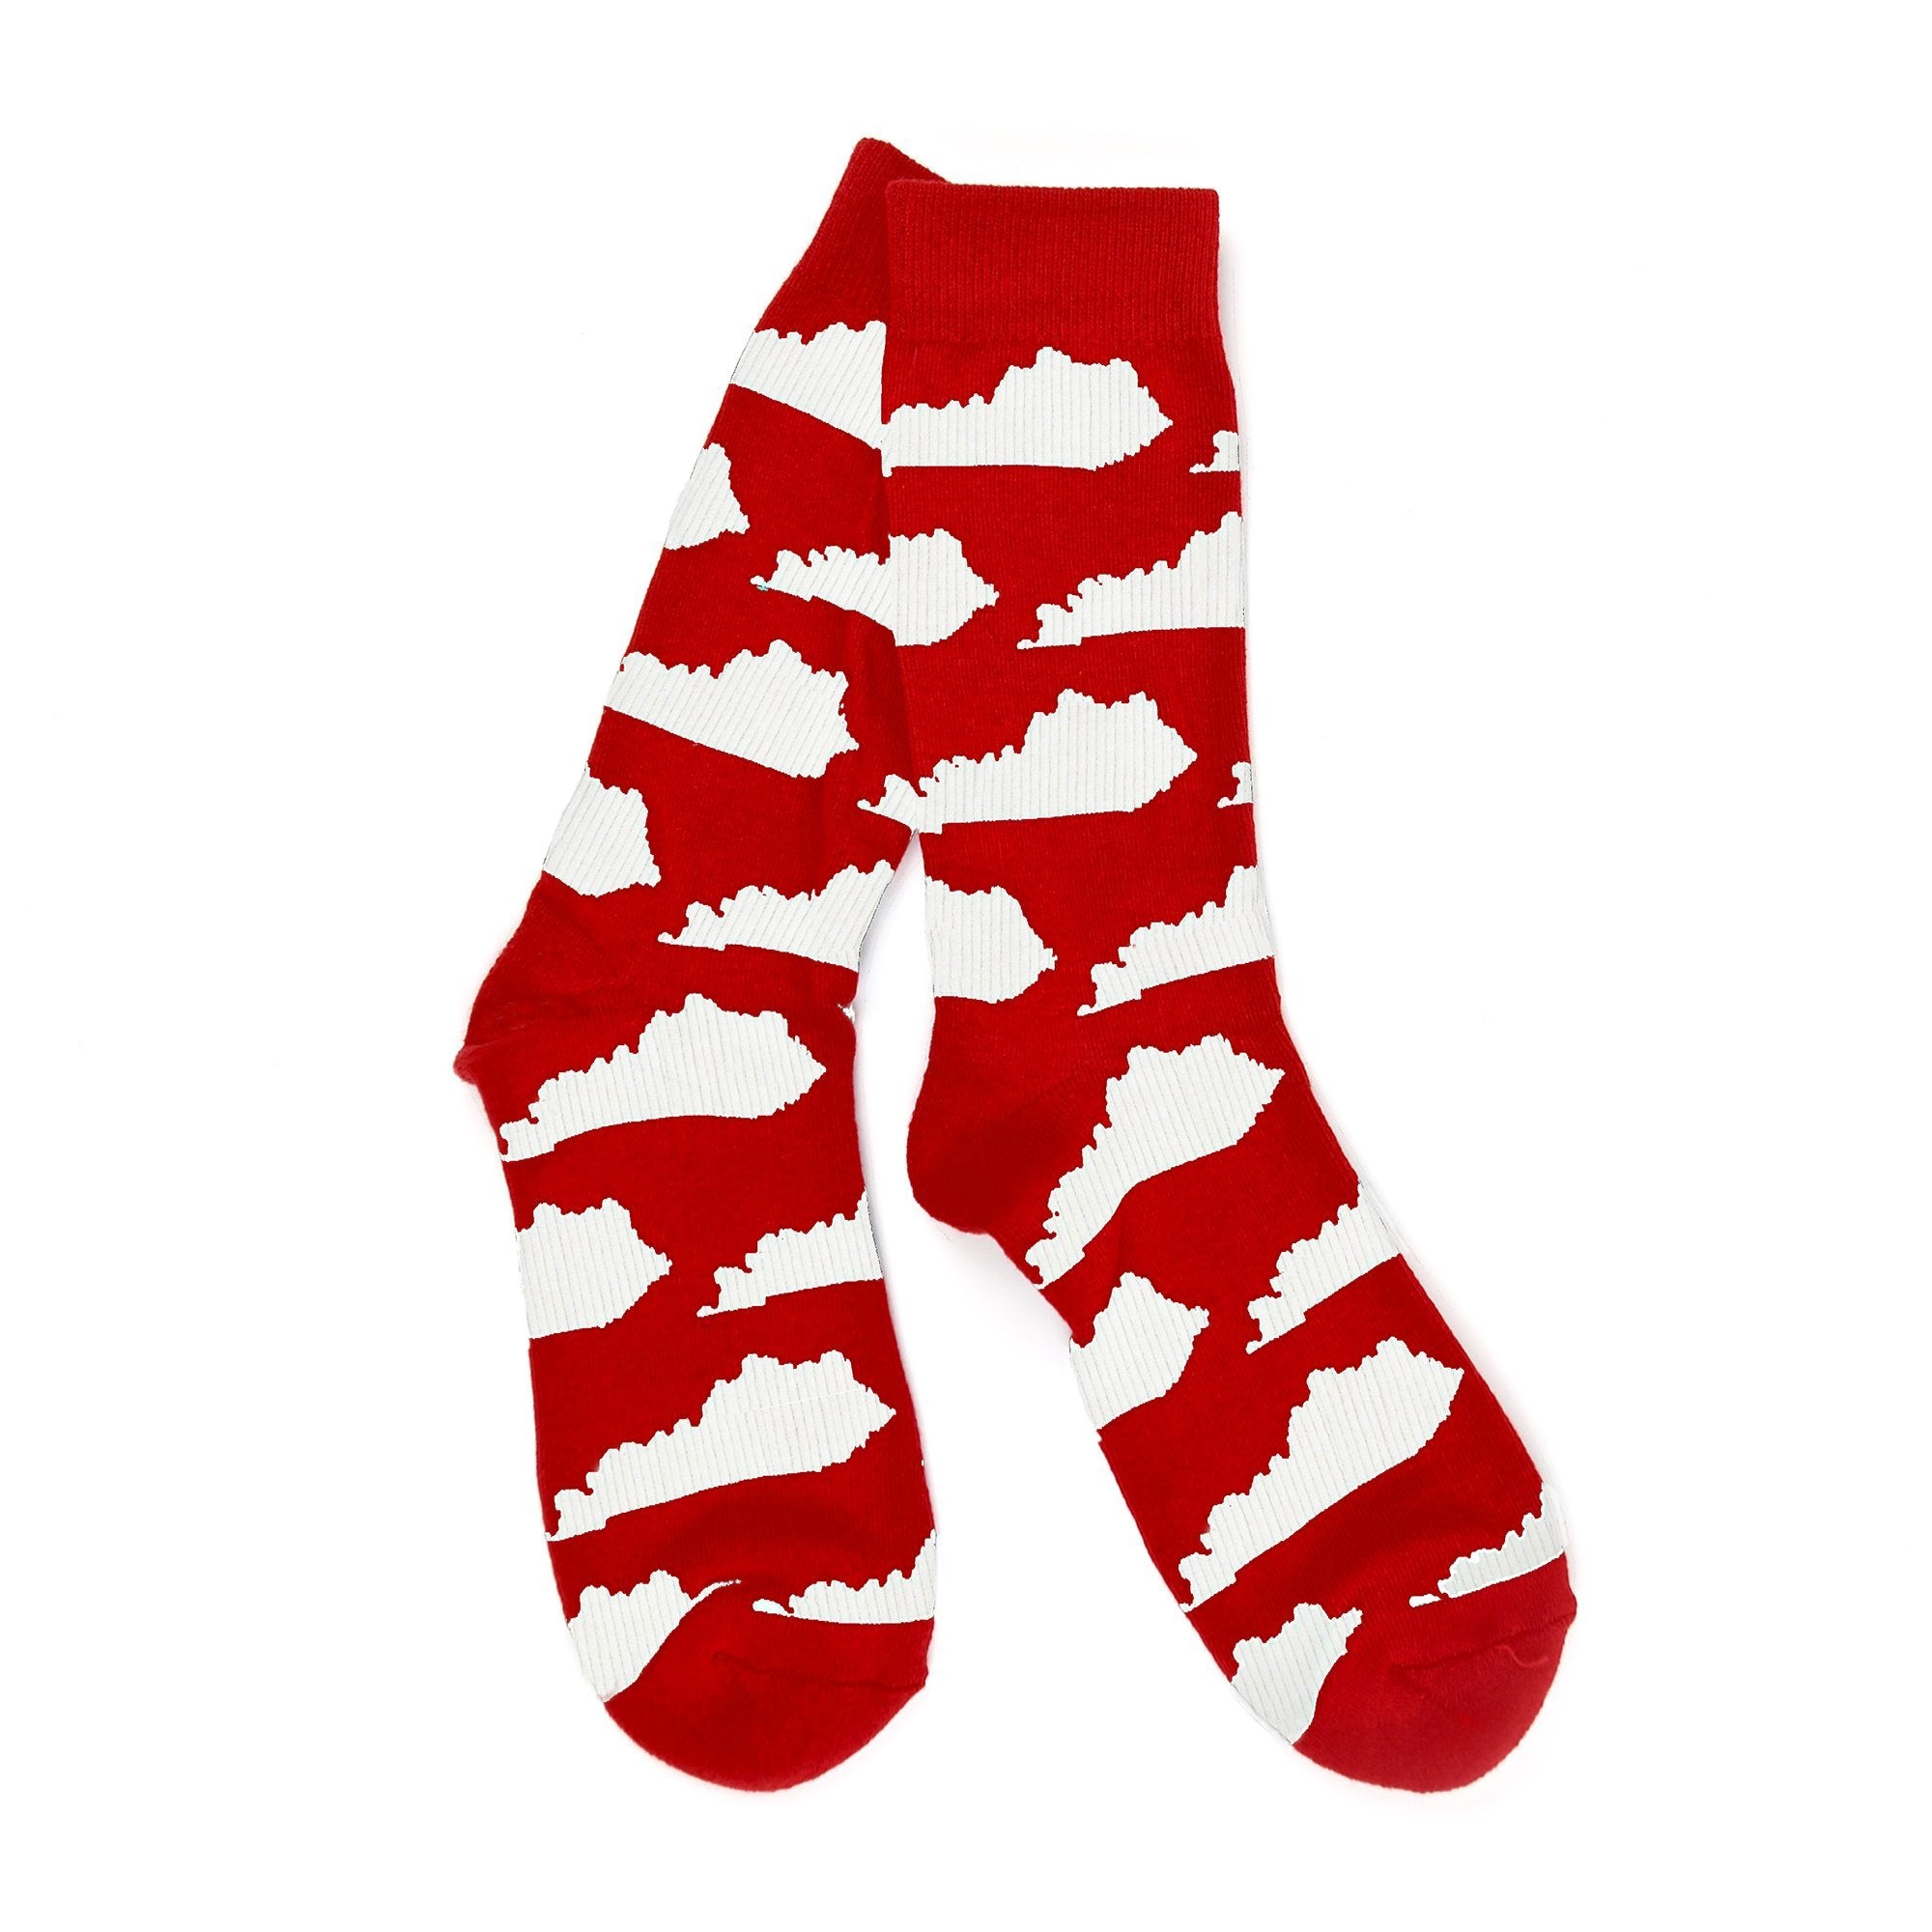 KY Shape Socks (Red and White)-socks-Southern Socks